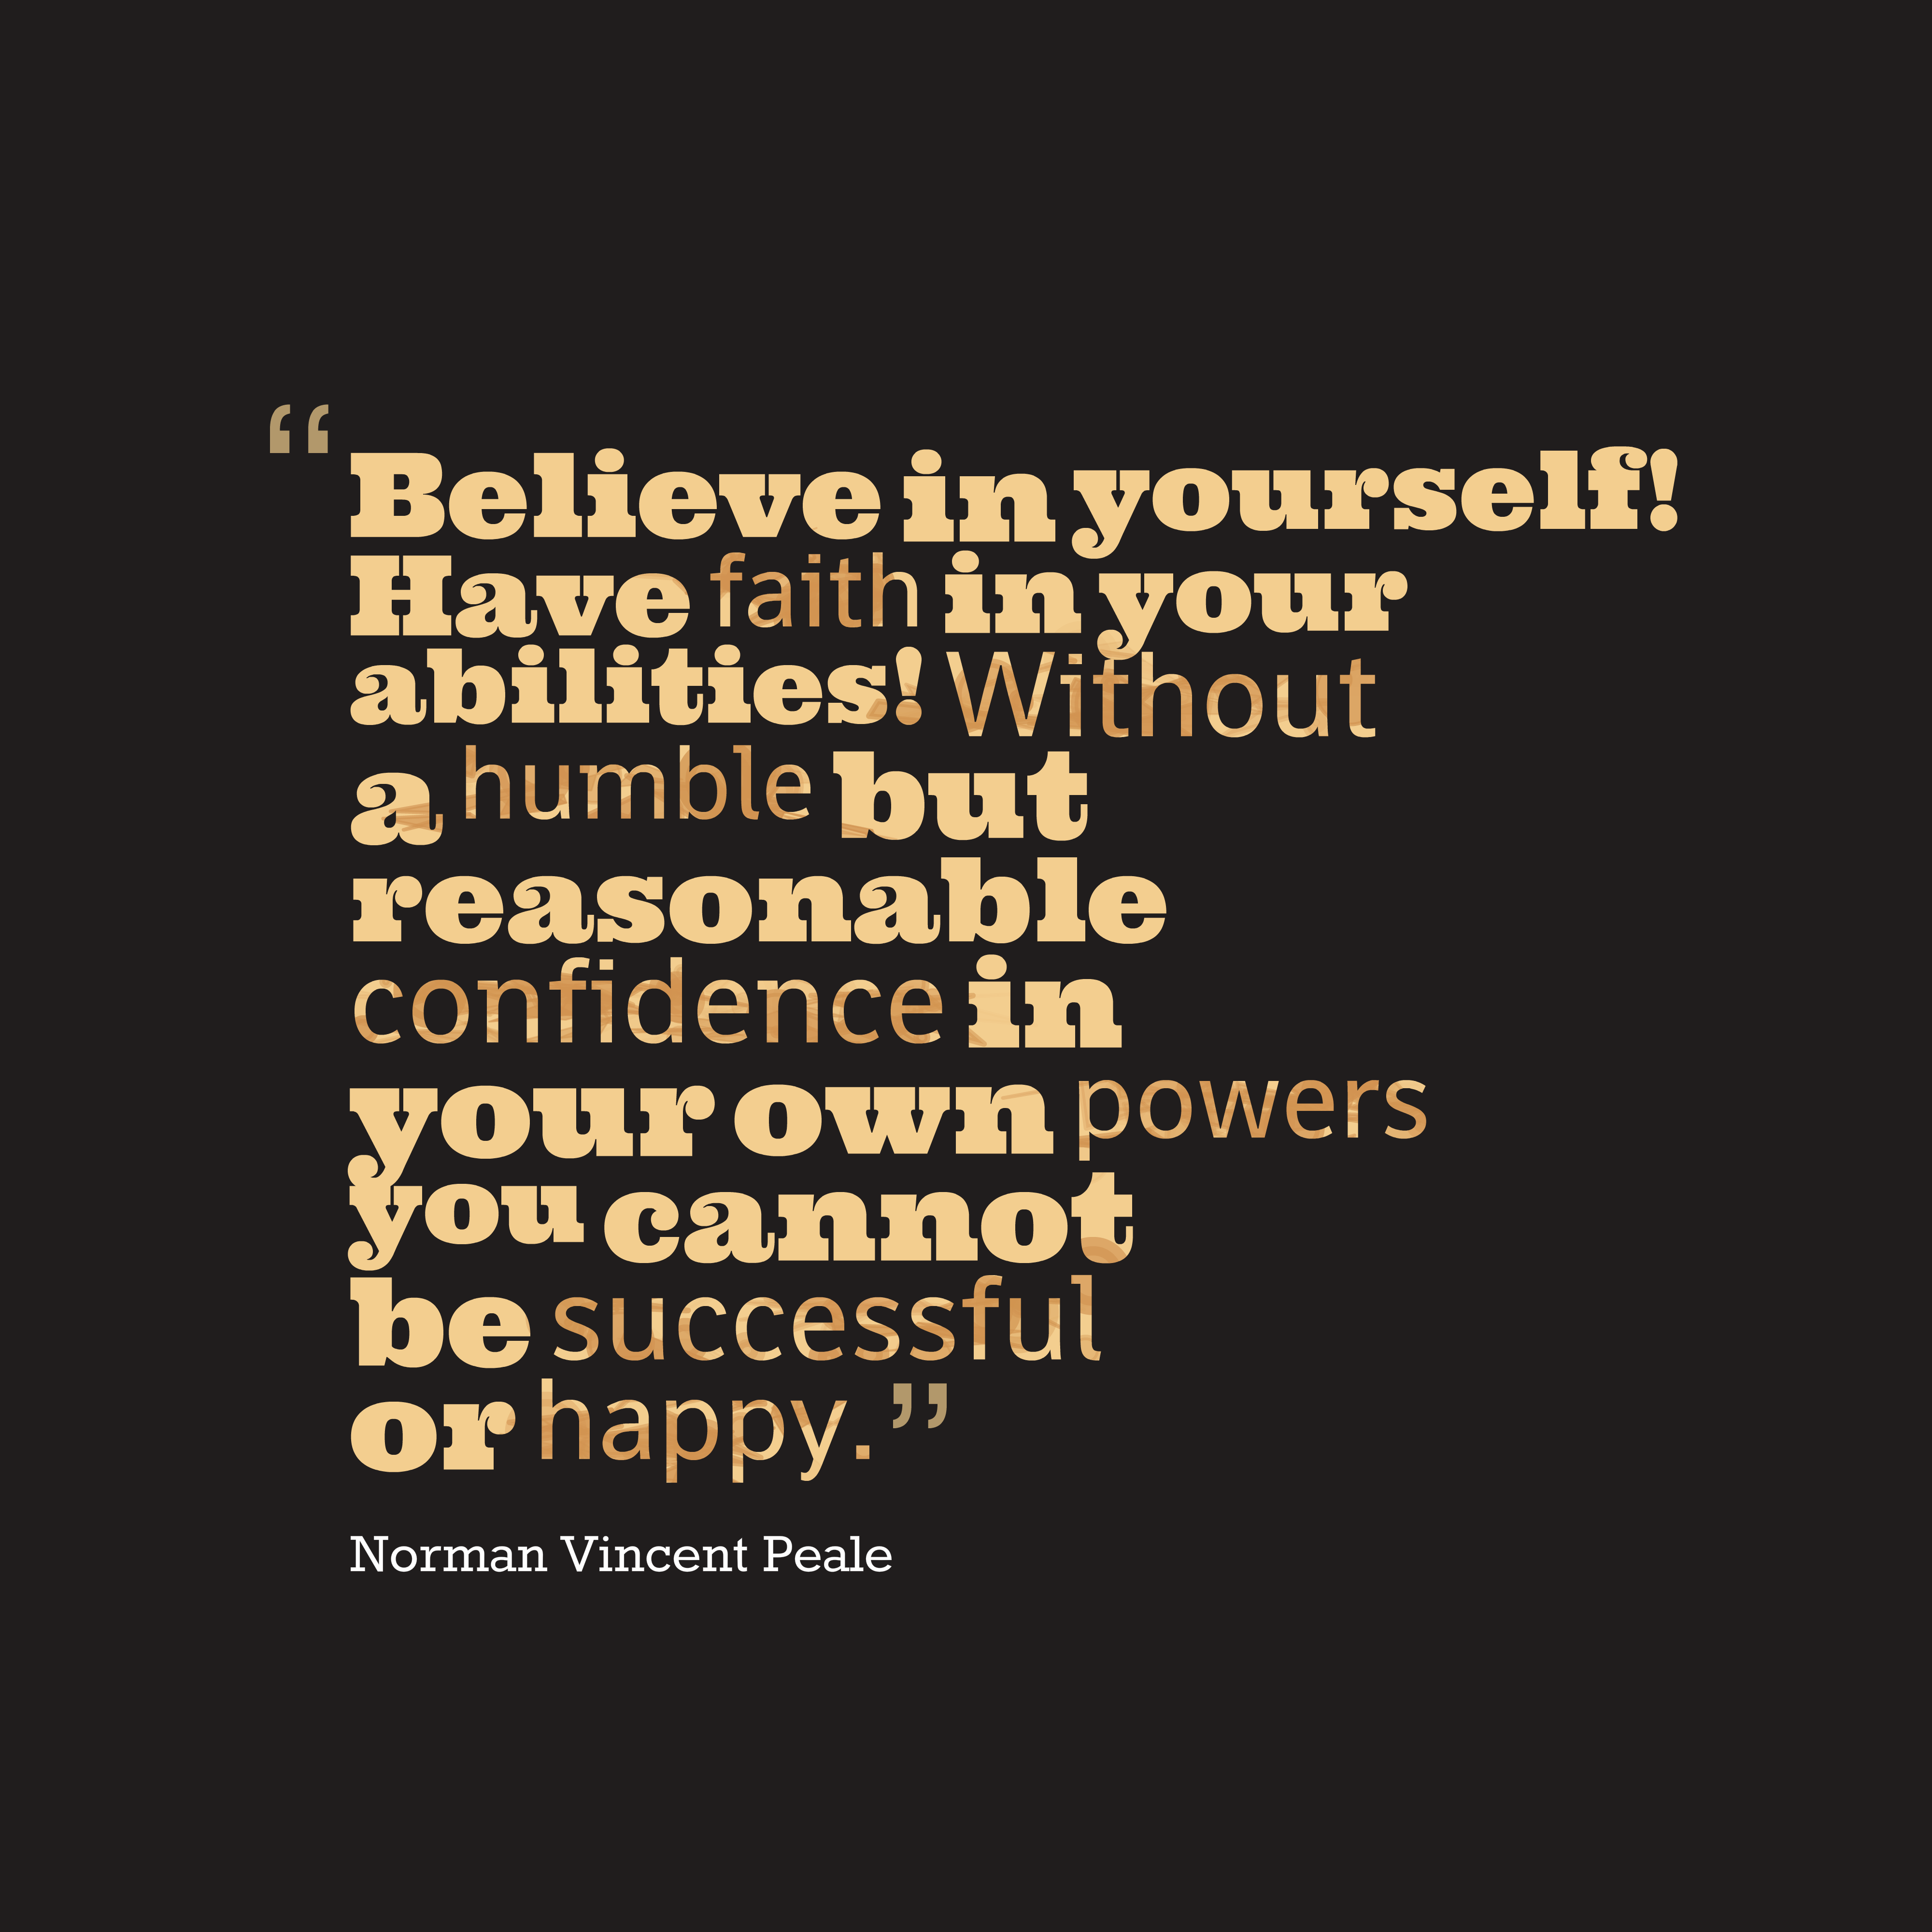 Quotes image of Believe in yourself! Have faith in your abilities! Without a humble but reasonable confidence in your own powers you cannot be successful or happy.